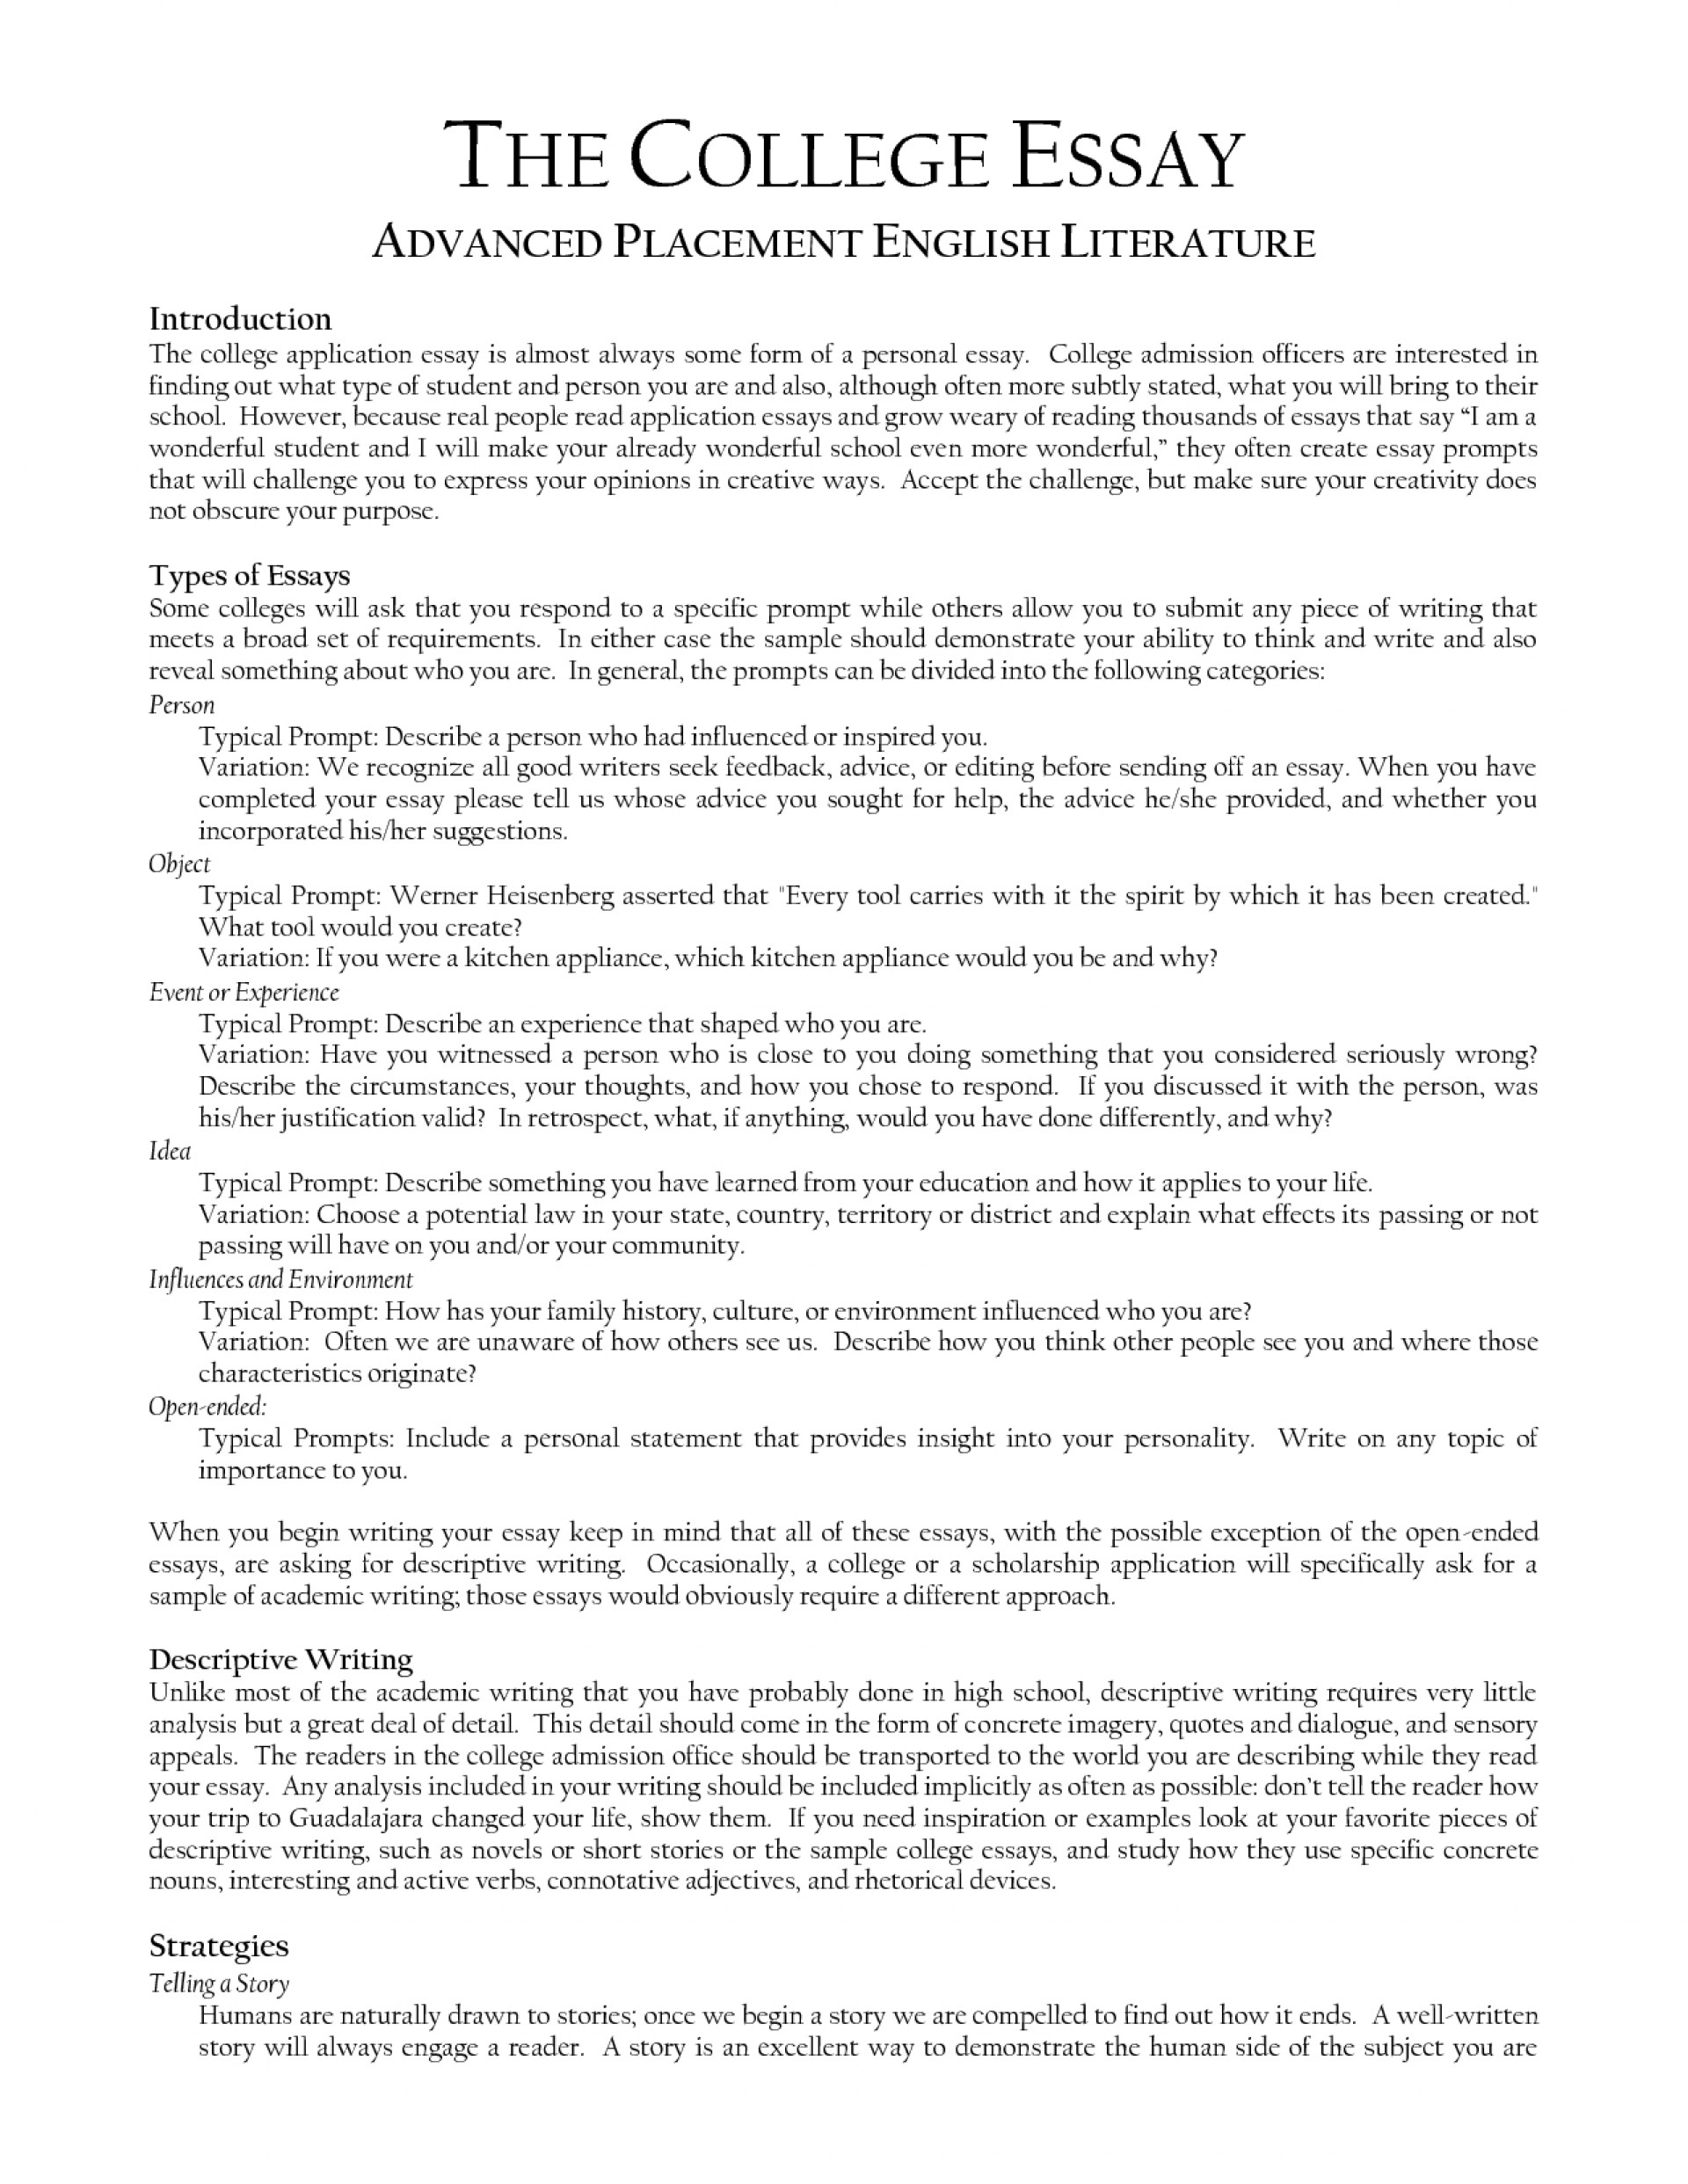 011 Essay Example John Hopkins Essays That Worked Good College Examples Writings And About Sports Format Asli Aetherair Apply Texas Stanford Reddit Johns Topic Singular 2021 2018 2020 1920